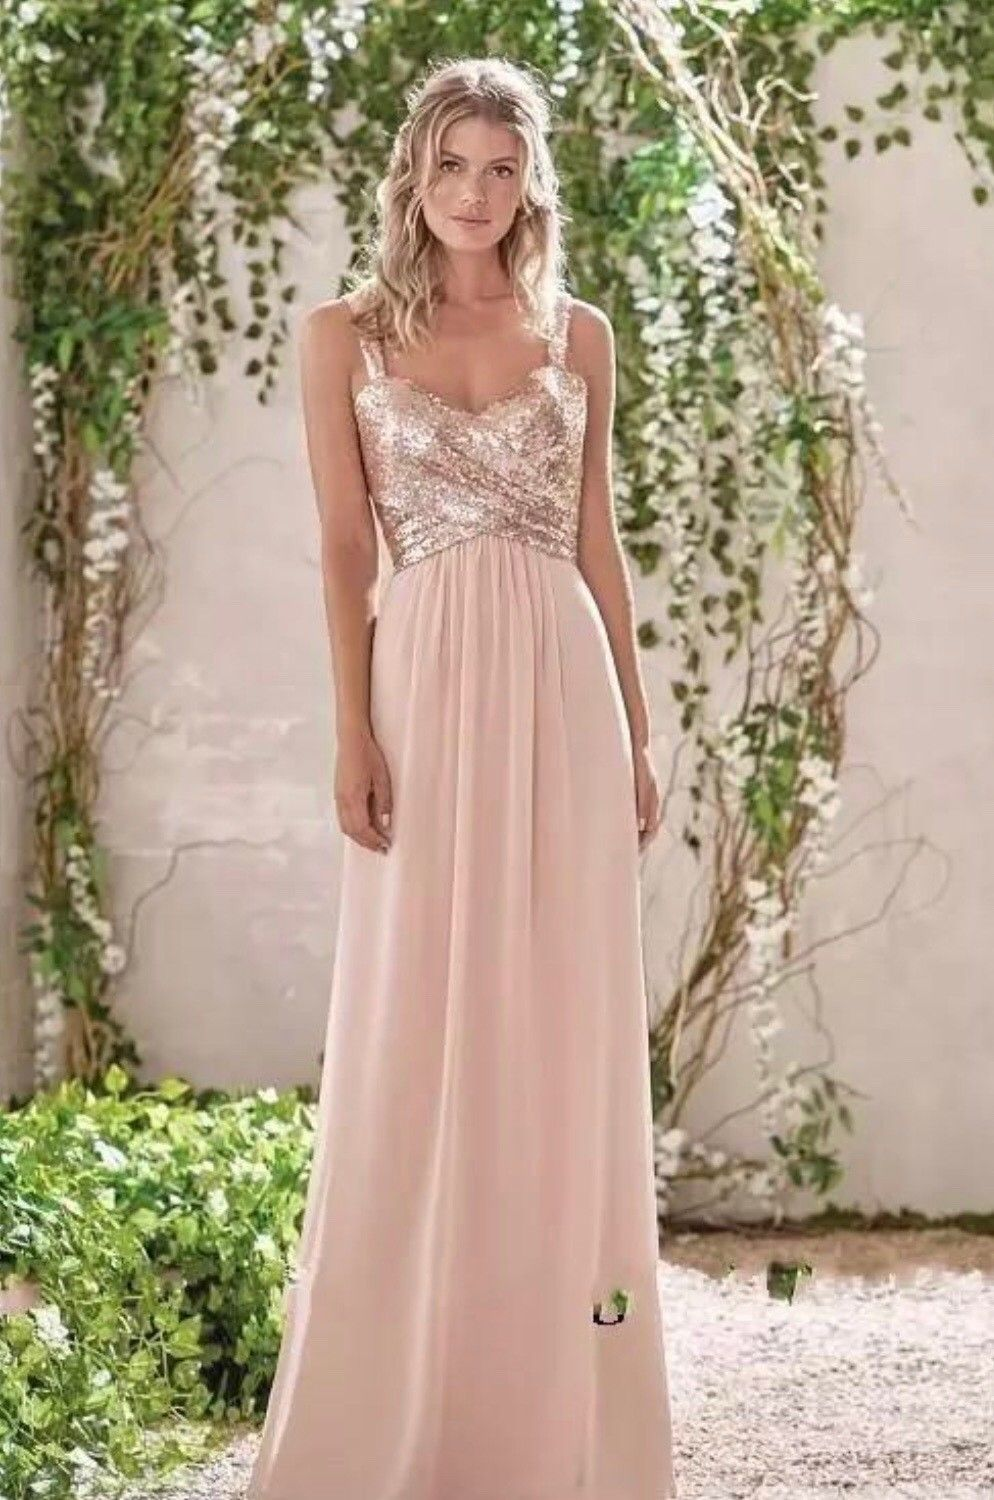 Rose Gold Bridesmaid Dresses A Line Spaghetti Backless Sequins Chiffon New Size